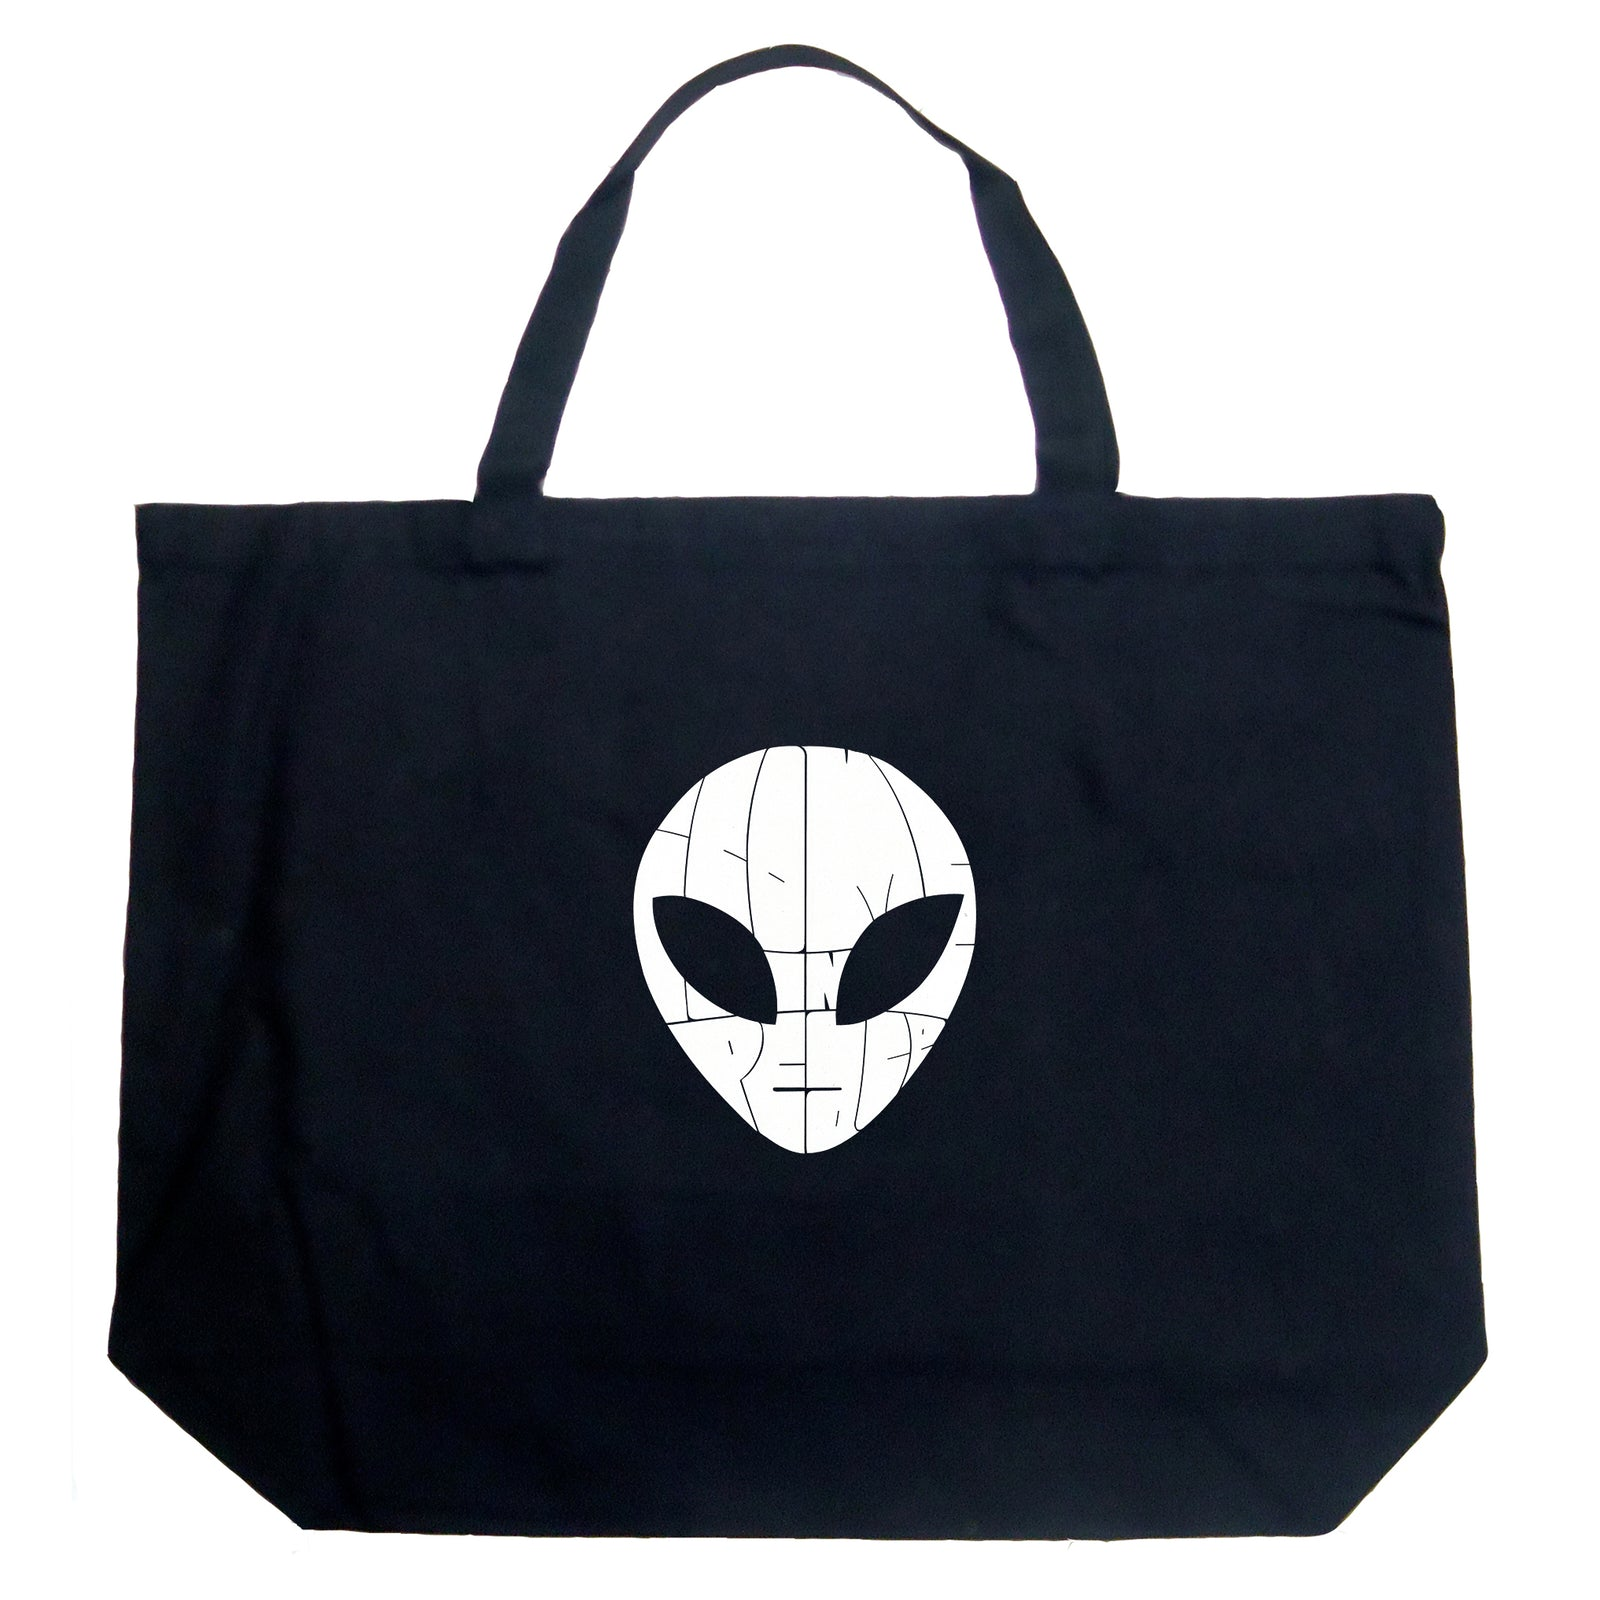 Large Tote Bag - I COME IN PEACE